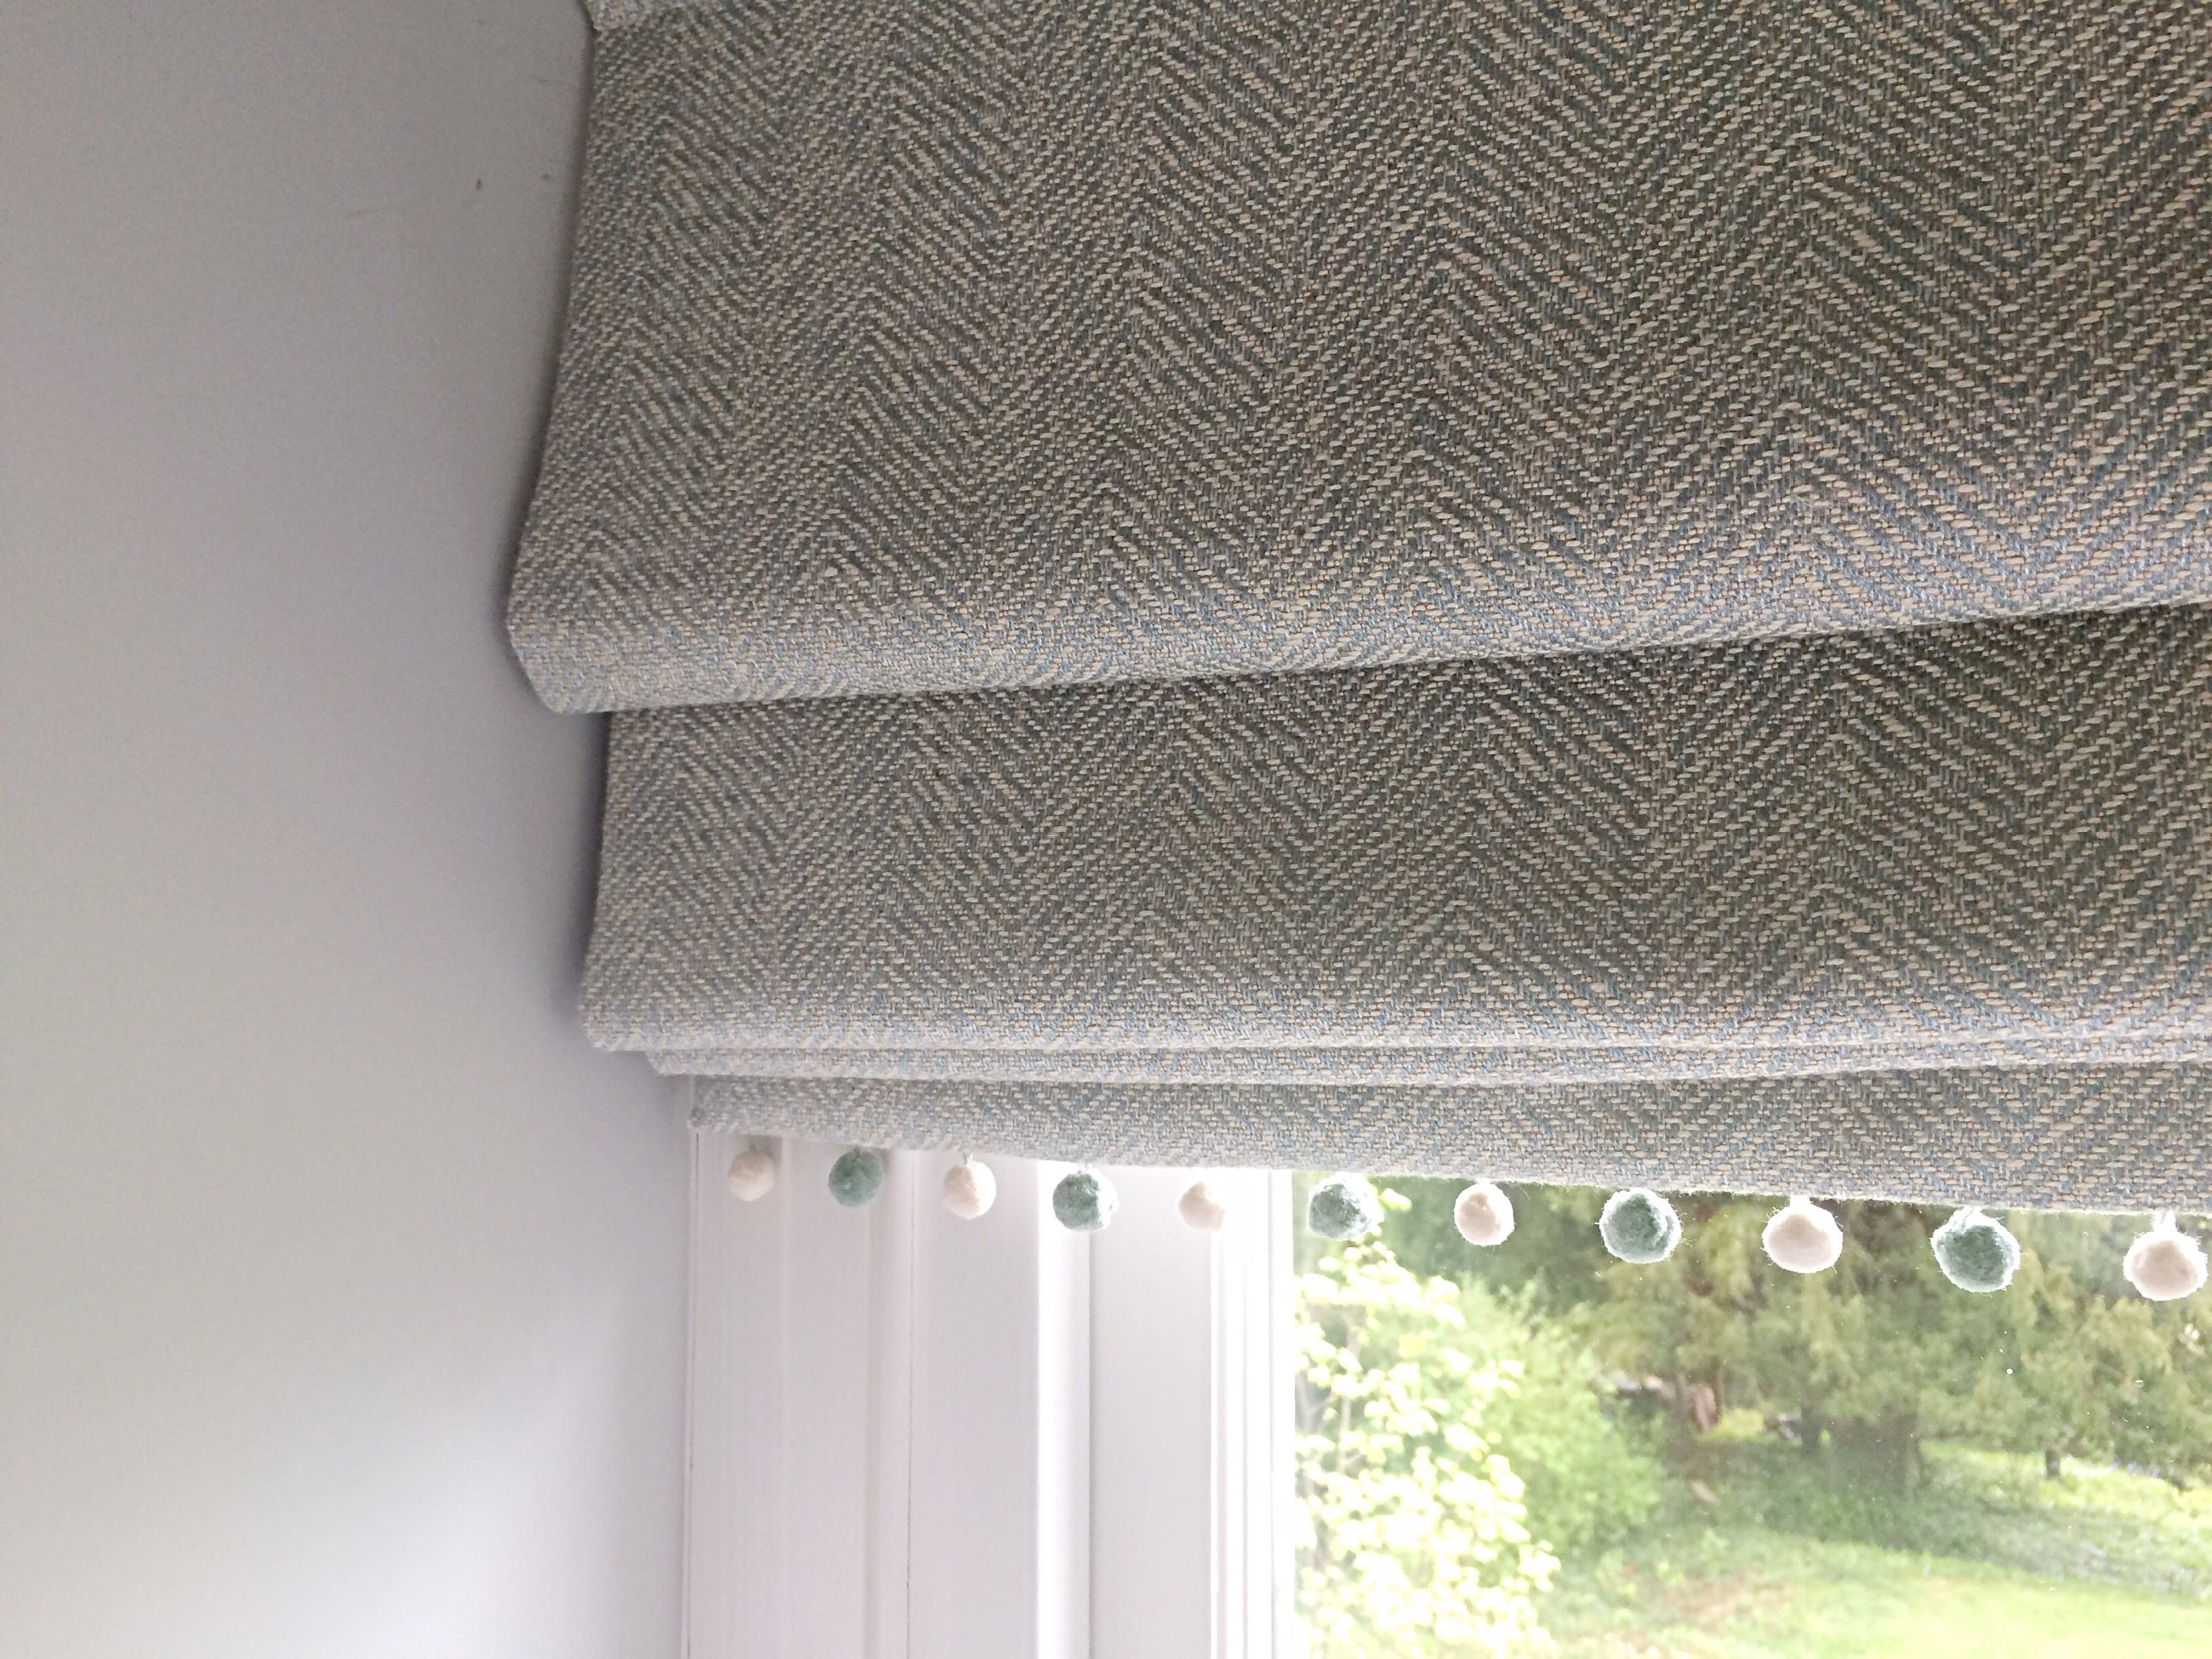 Blinds and curtains combination bedroom - Fabulous Fabric For Roman Blinds Silverton Weave By Gp J Baker Trimmed With Susie Watson Pom Poms